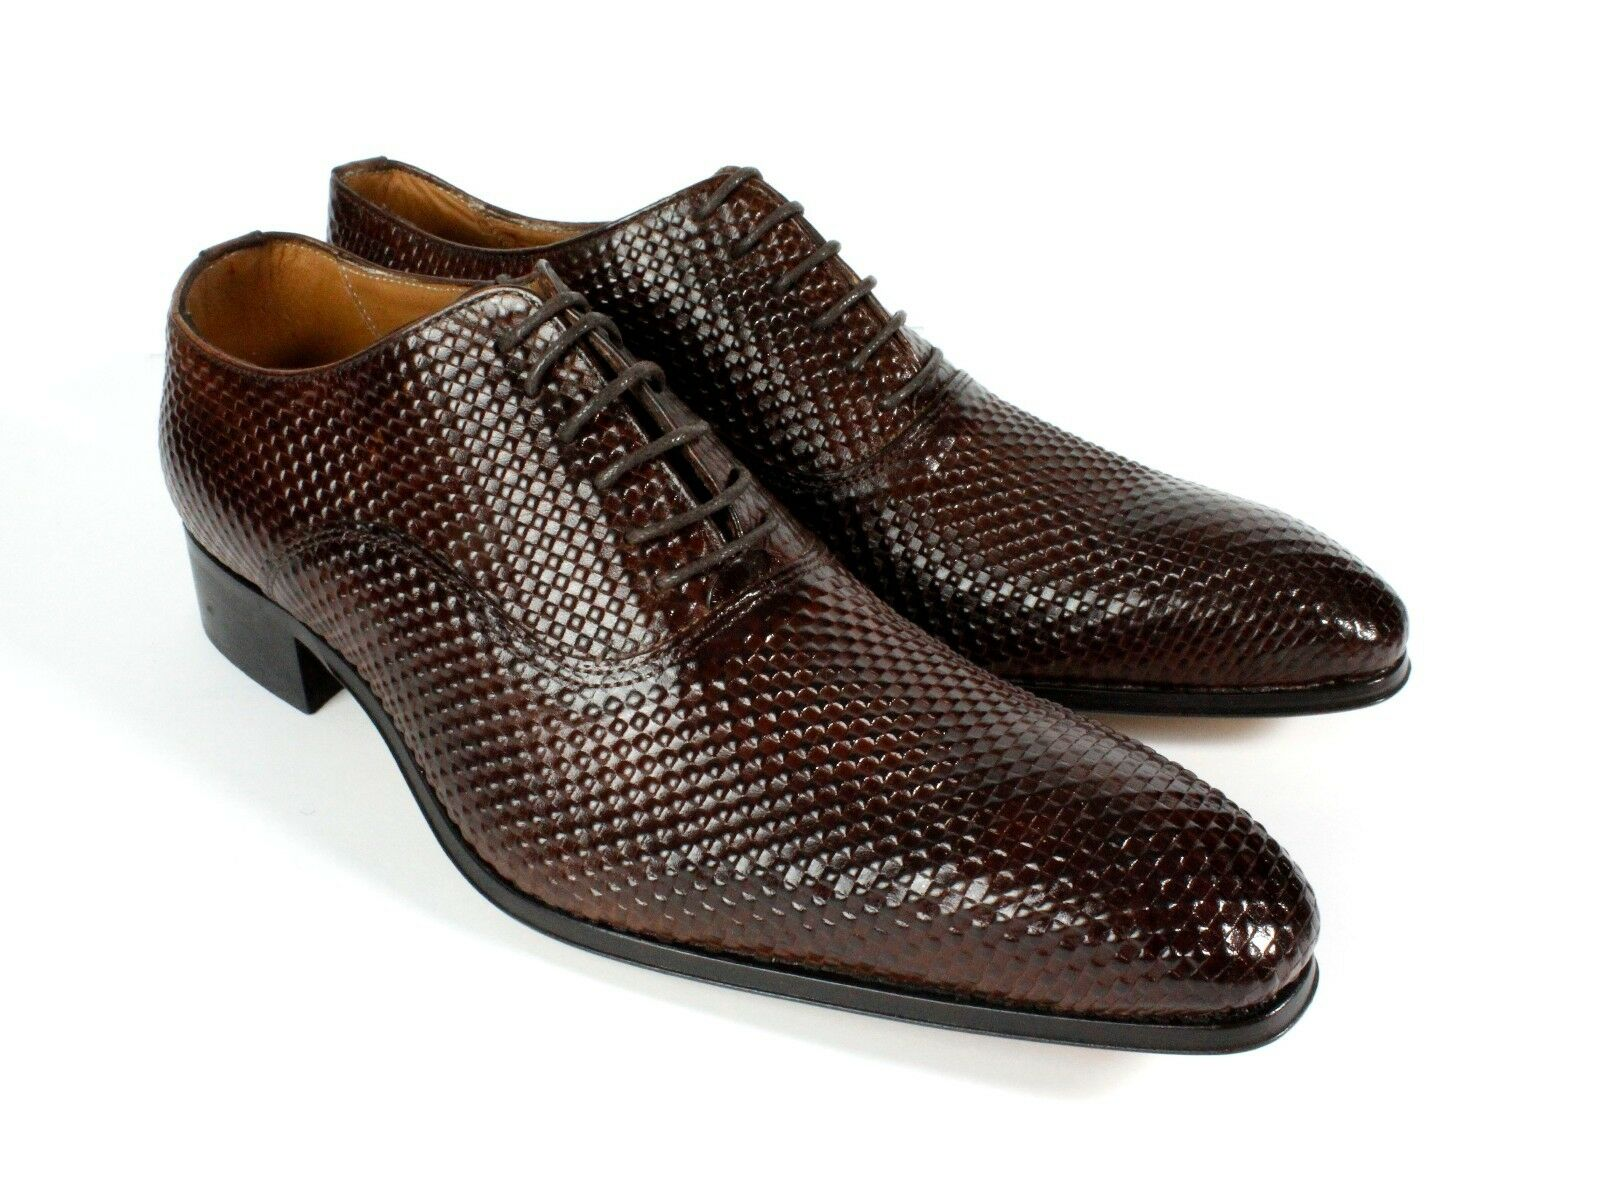 Ivan Troy Brown Yaya Handmade Men Shoes46, Italian Leather Dress Shoes/Oxford Shoes46, Men 47 4a2422